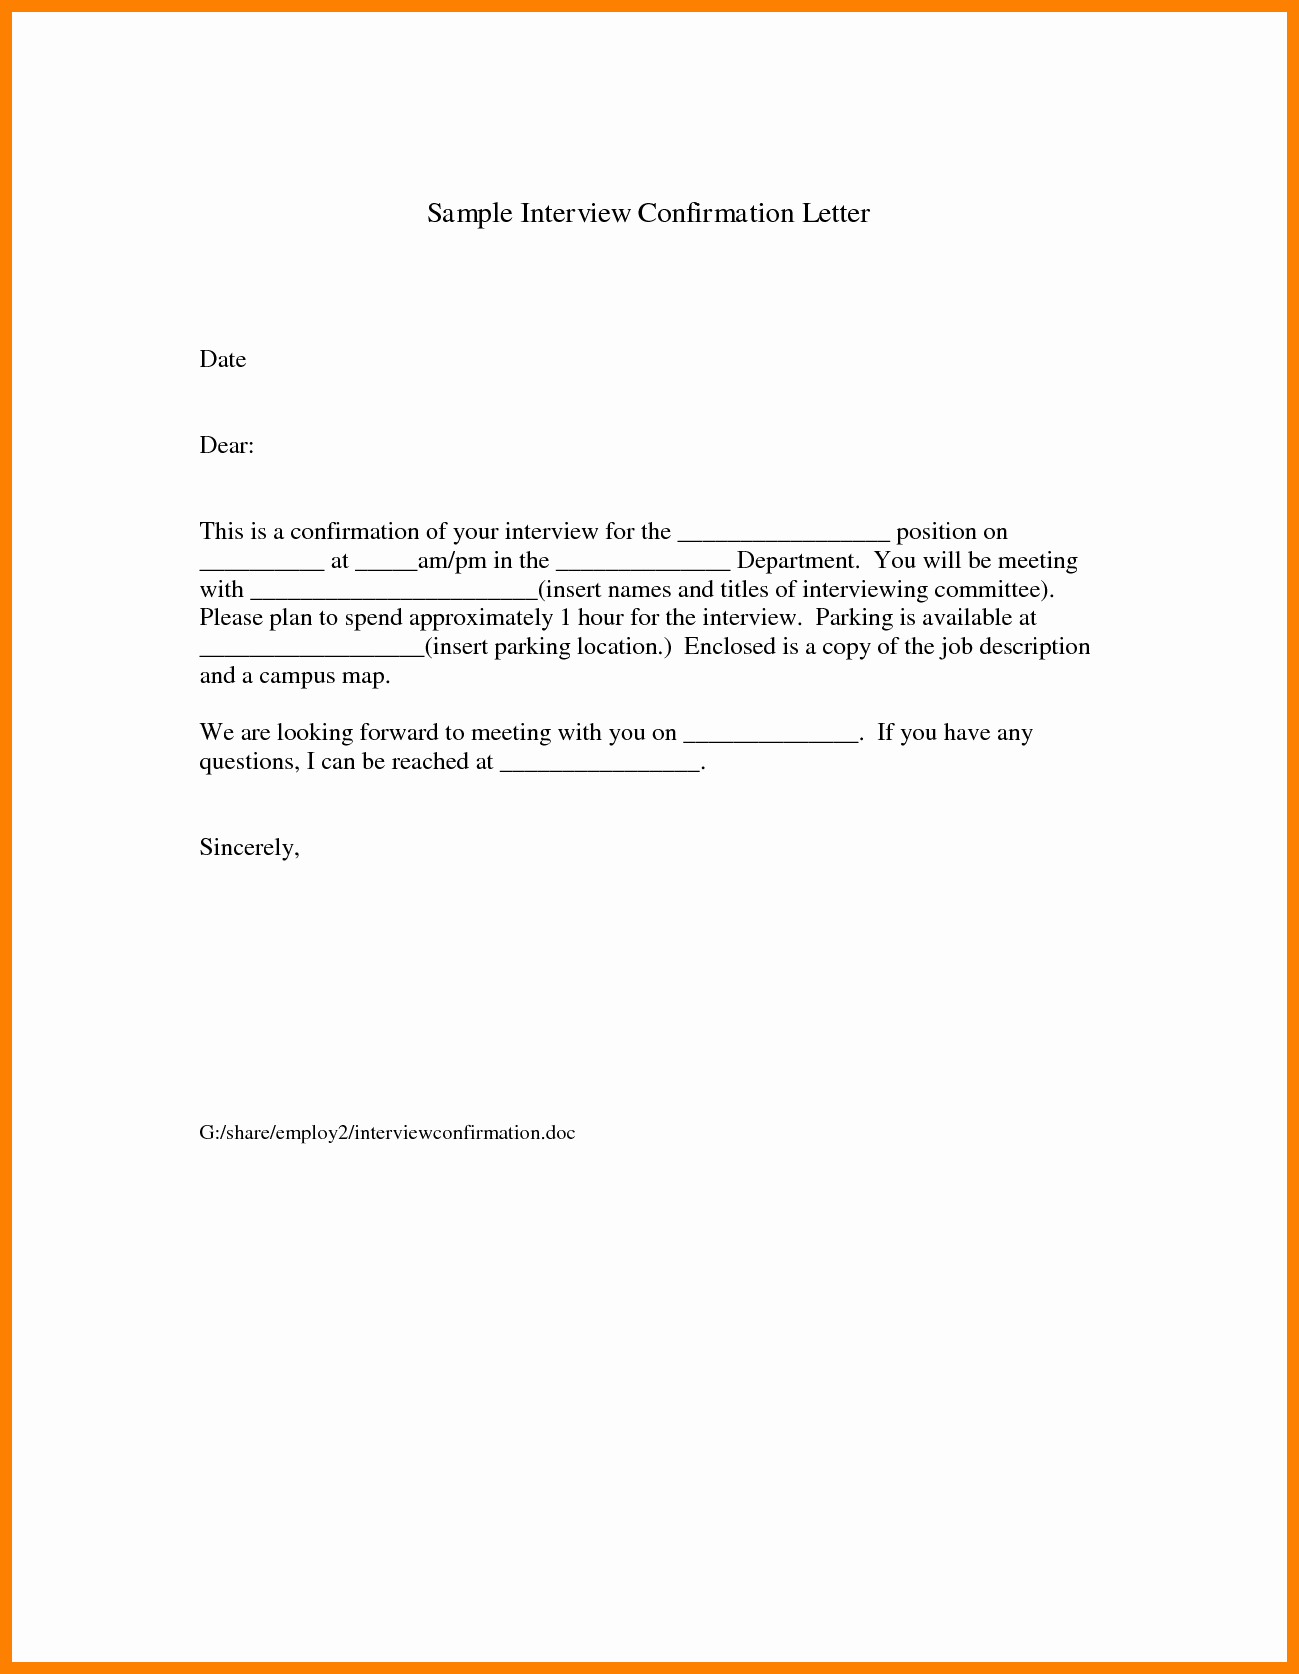 Appointment Confirmation Email Template Luxury Interview Confirmation Email